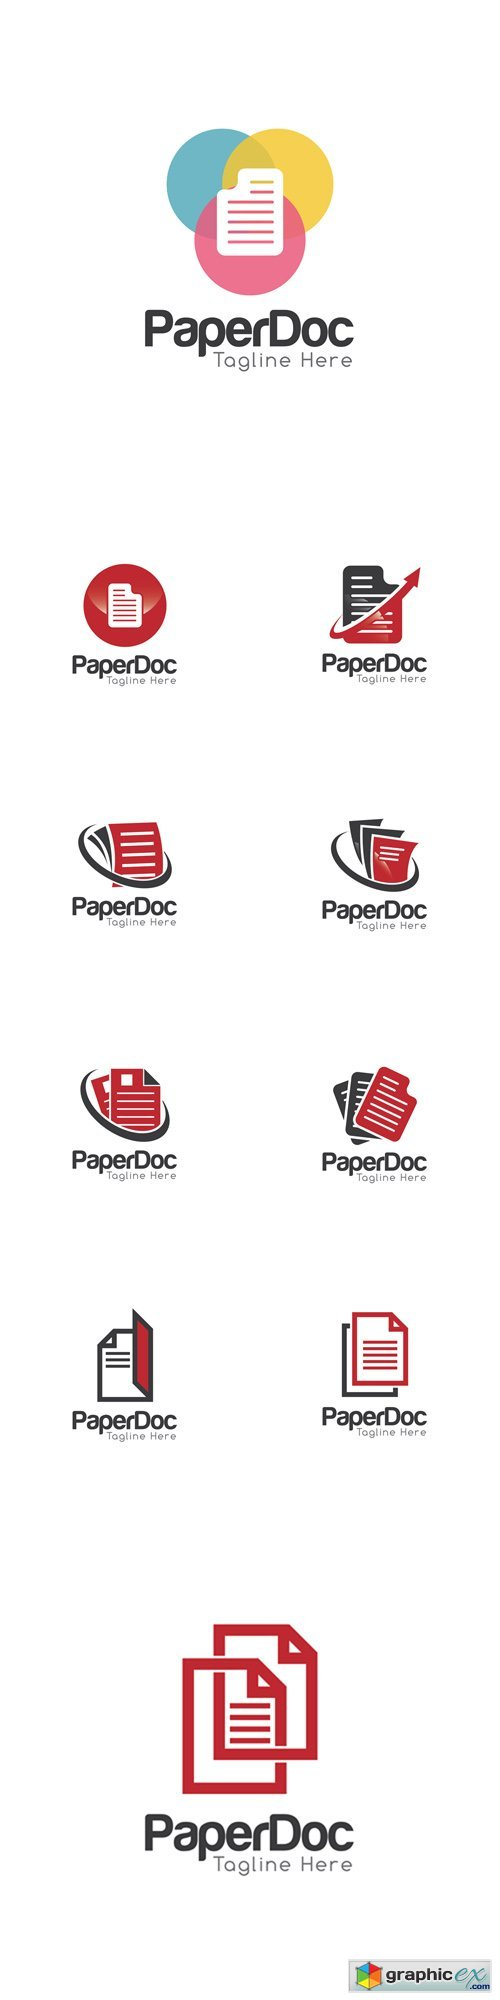 Document Creative Concept Logo Template  stock images